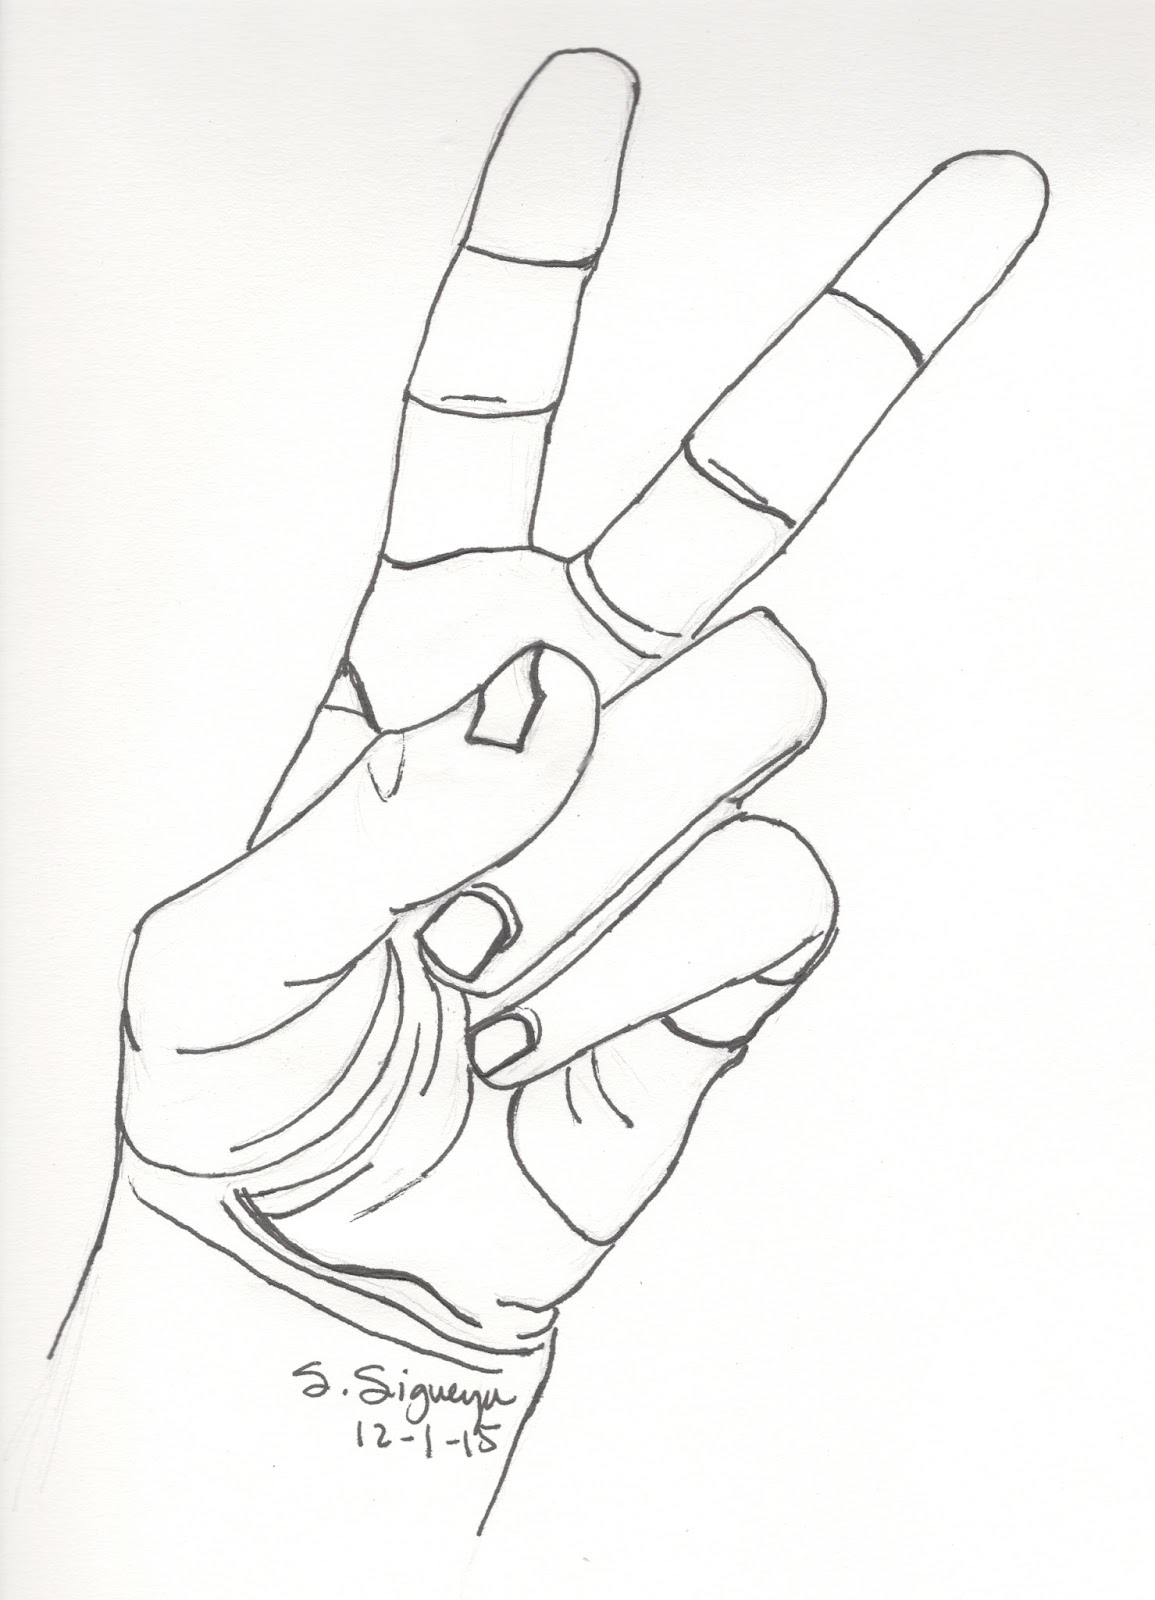 Drawn peace sign hand drawing Peace #100DaysOfHands  hand woman